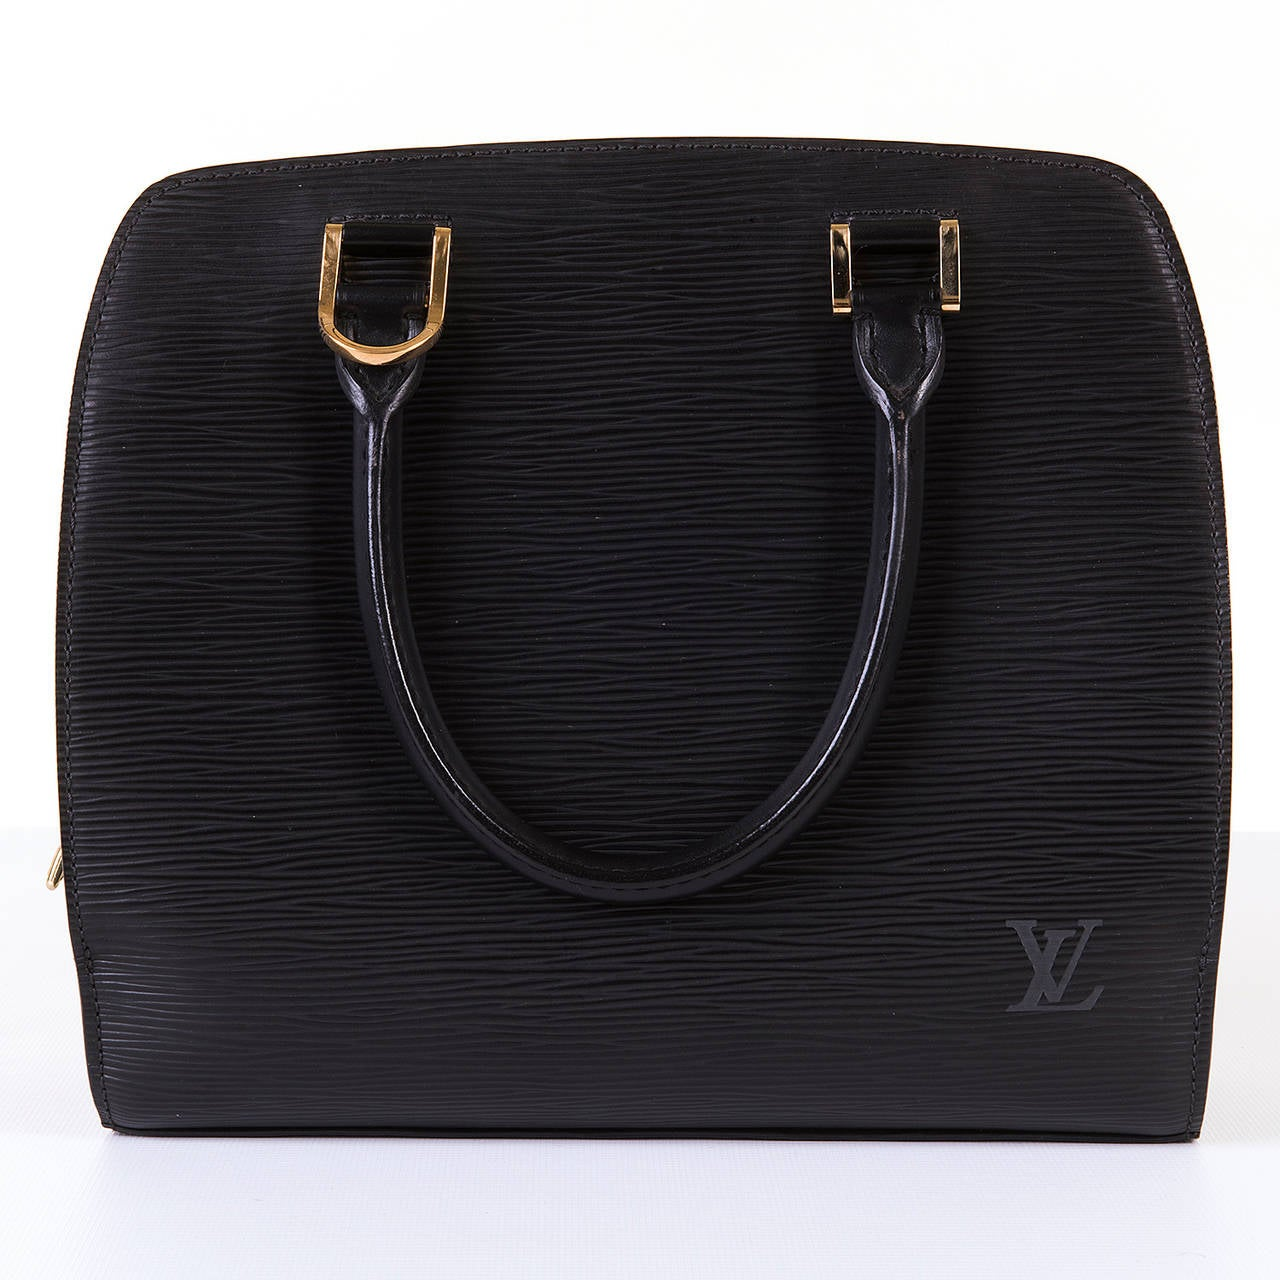 A Super Louis Vuitton 'Pont-Neuf' 25cm Black Epi Bag 3